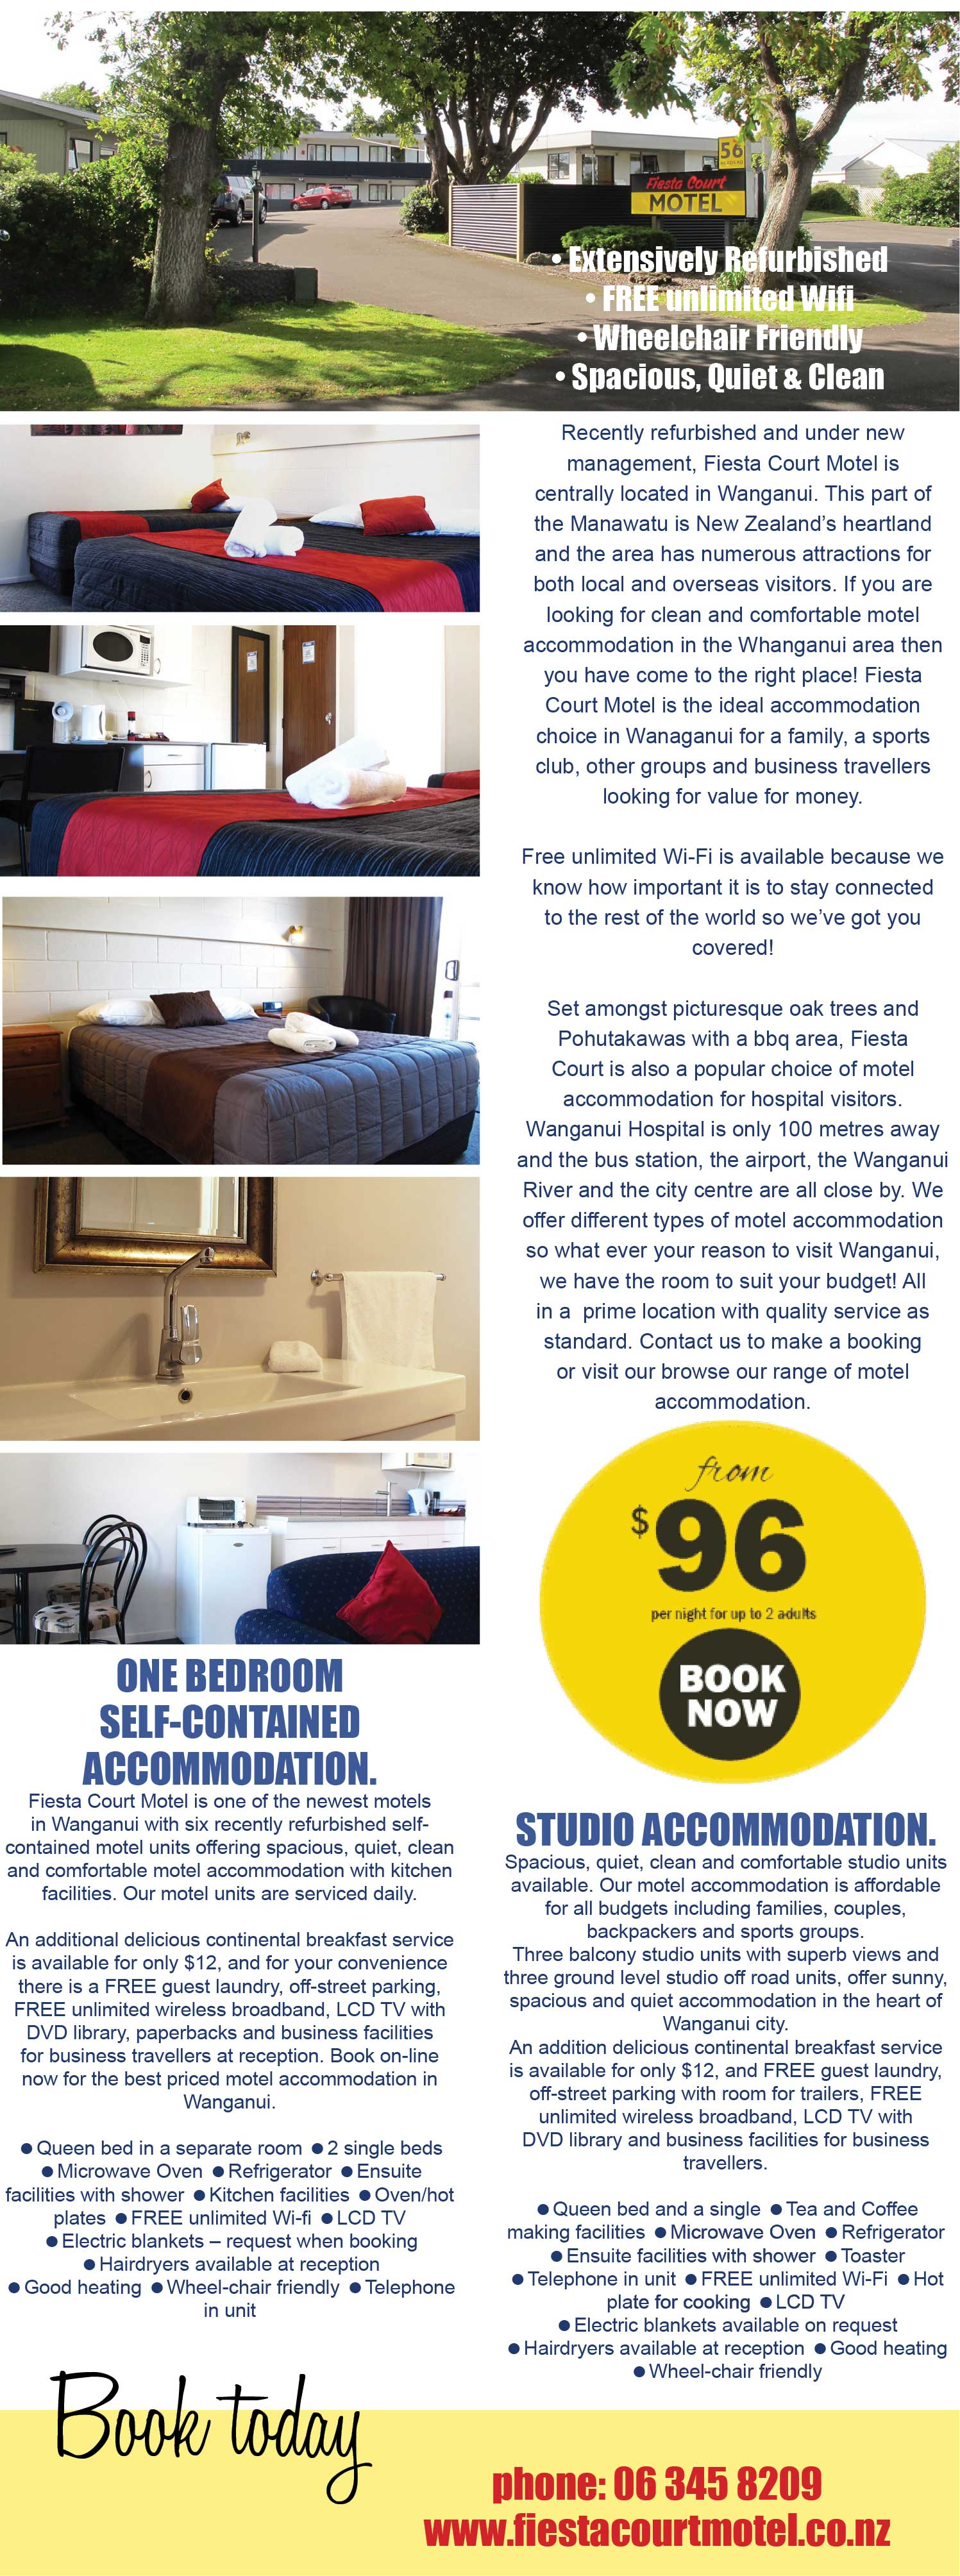 Fiesta Court Motel Wanganui, Self contained accommodation, studio accommodation, wheelchair friendly accommodation Wanganui, free wifi